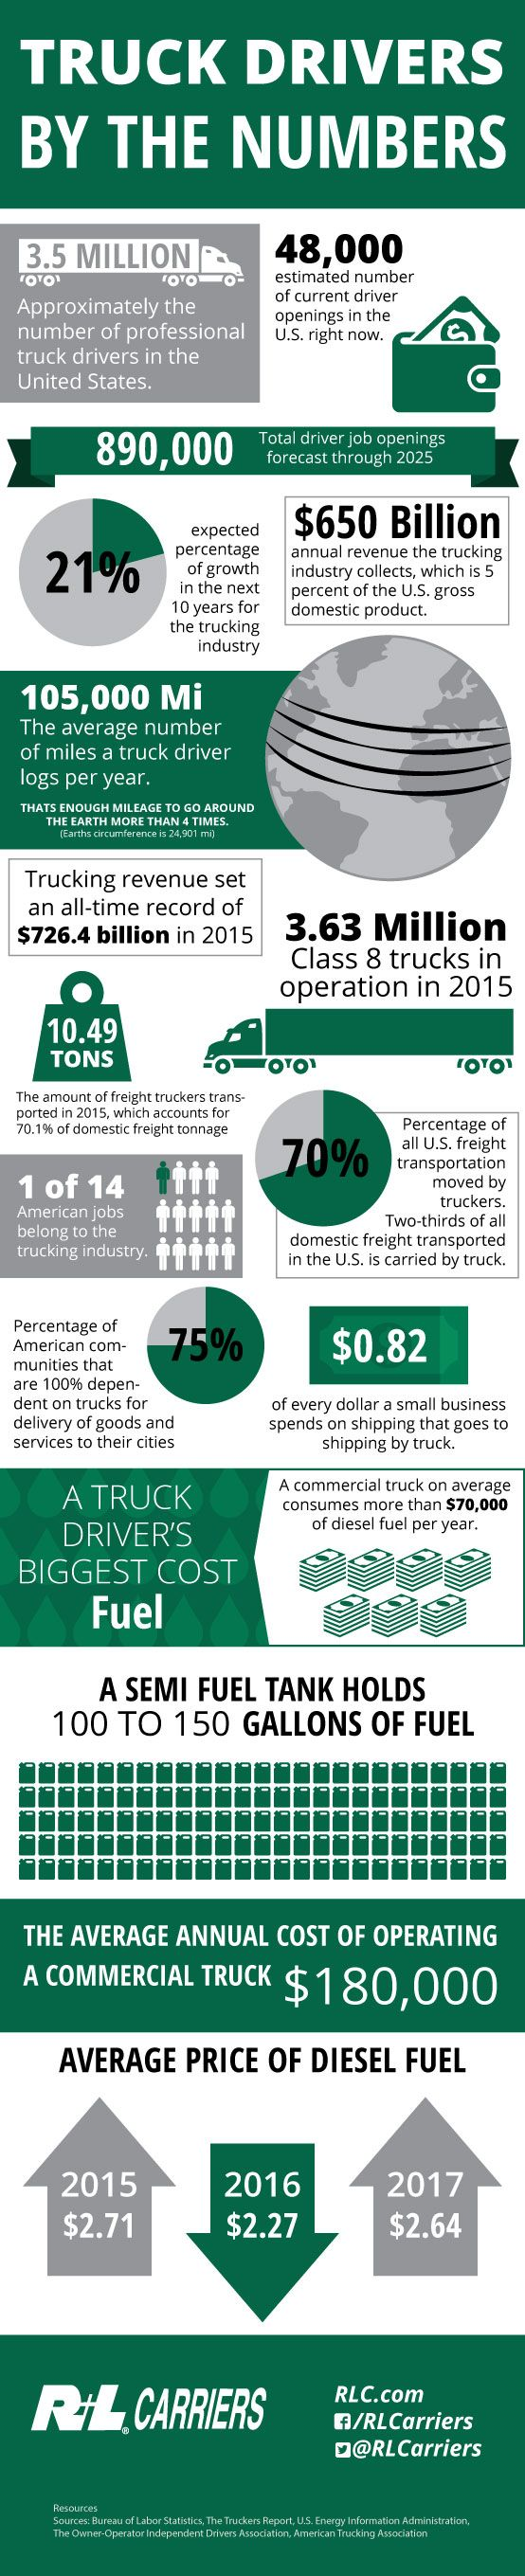 28 best Freight Division images on Pinterest   Truck drivers, Truck ...